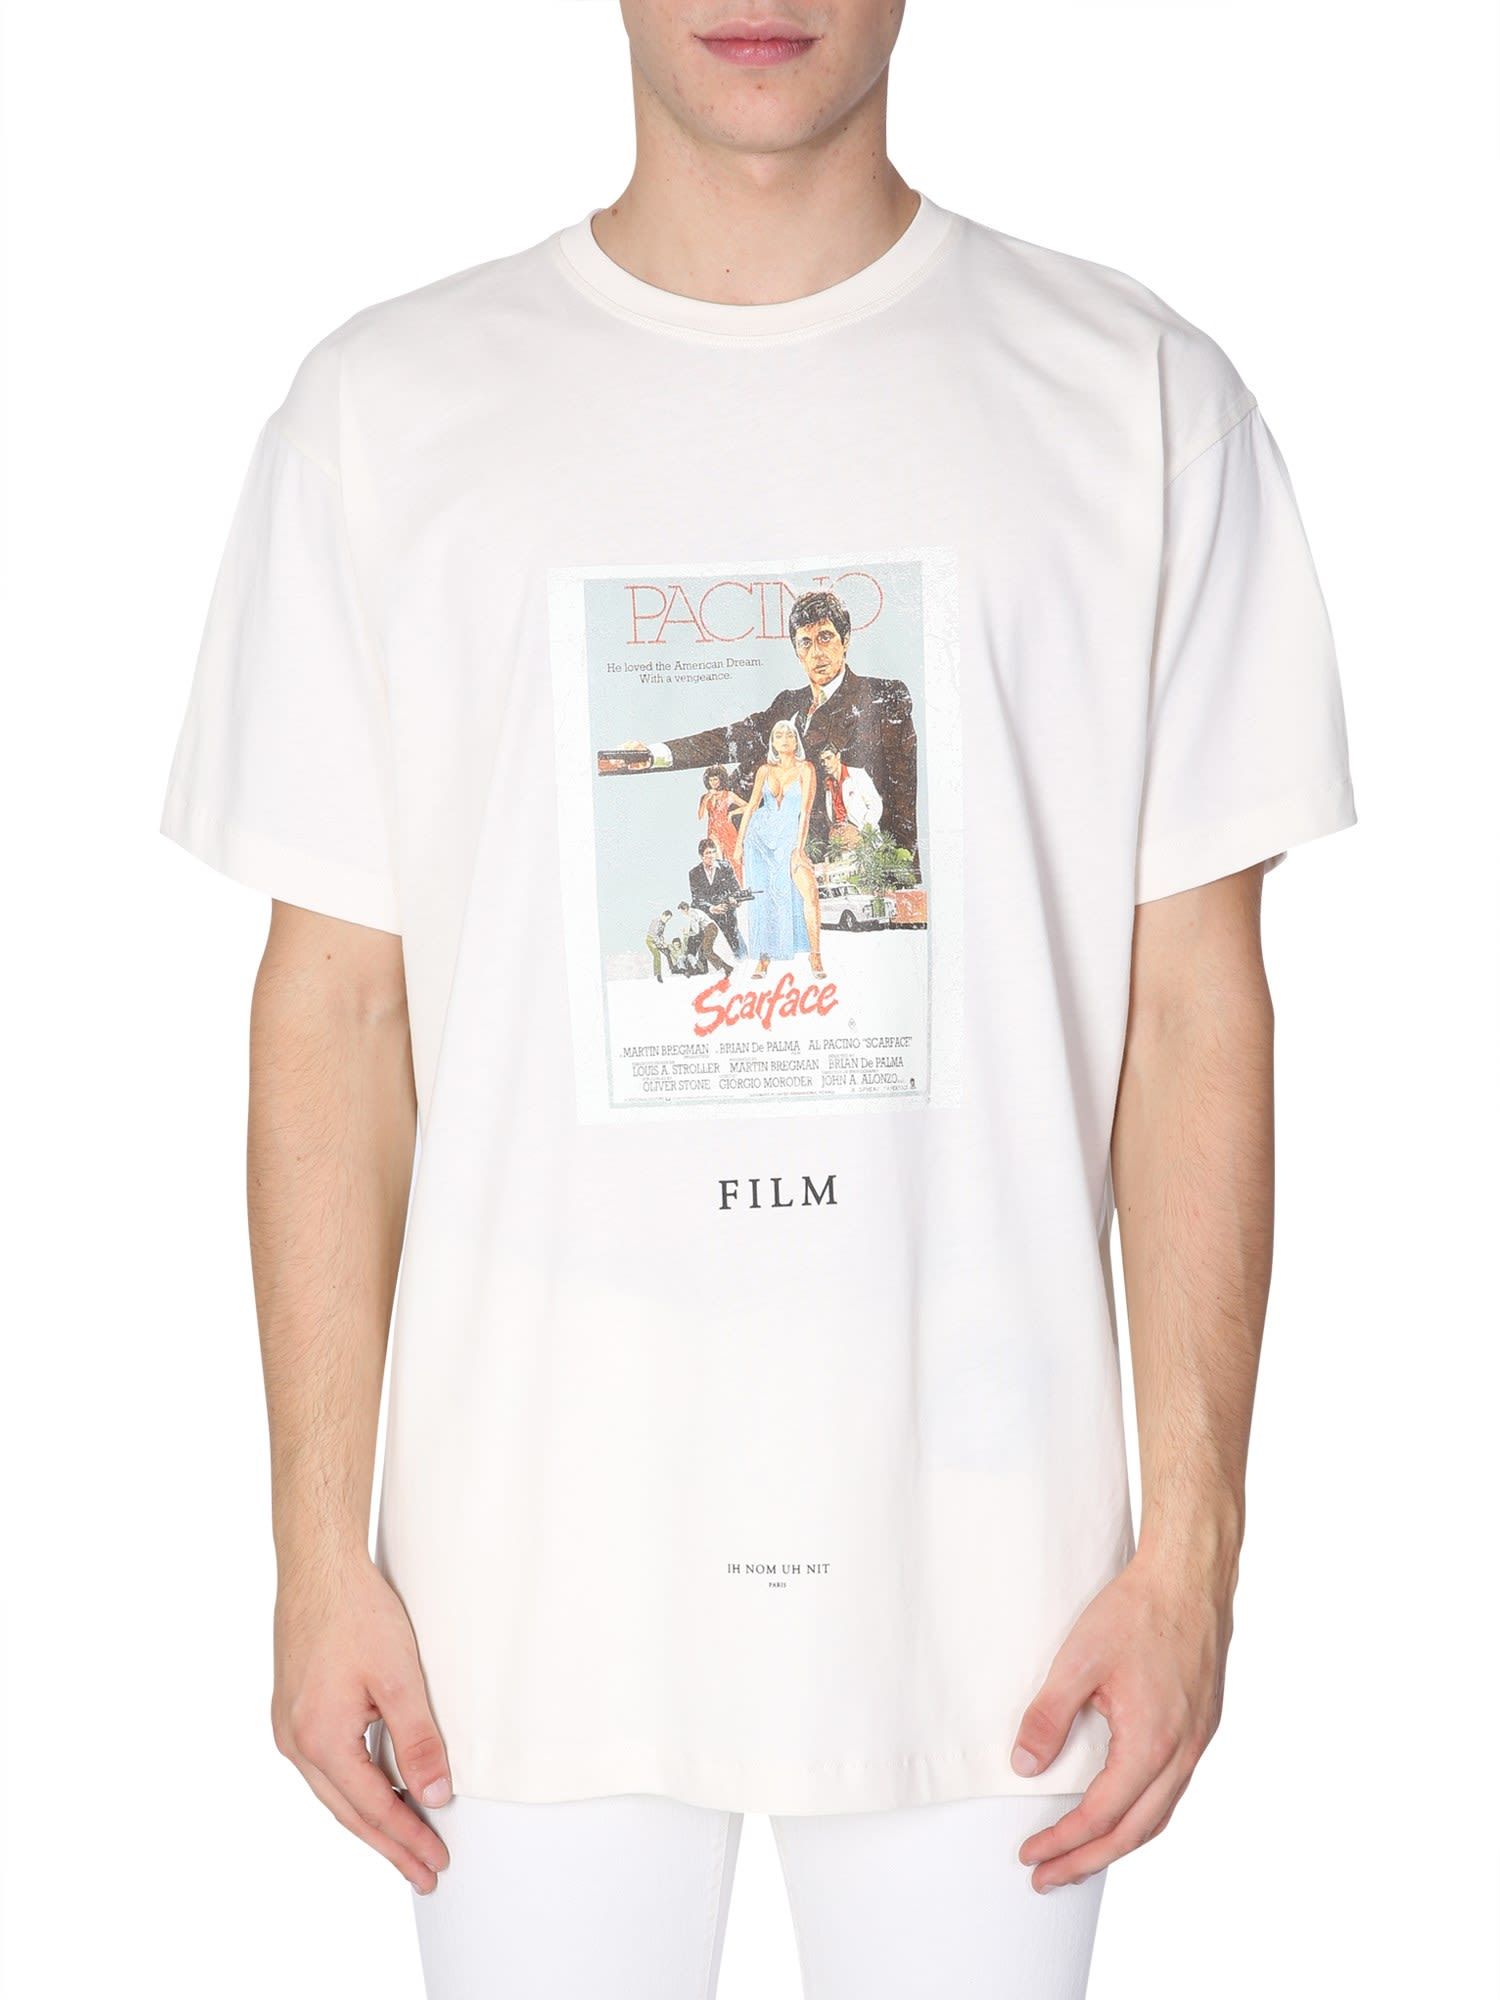 ih nom uh nit Scarface Printed T-shirt